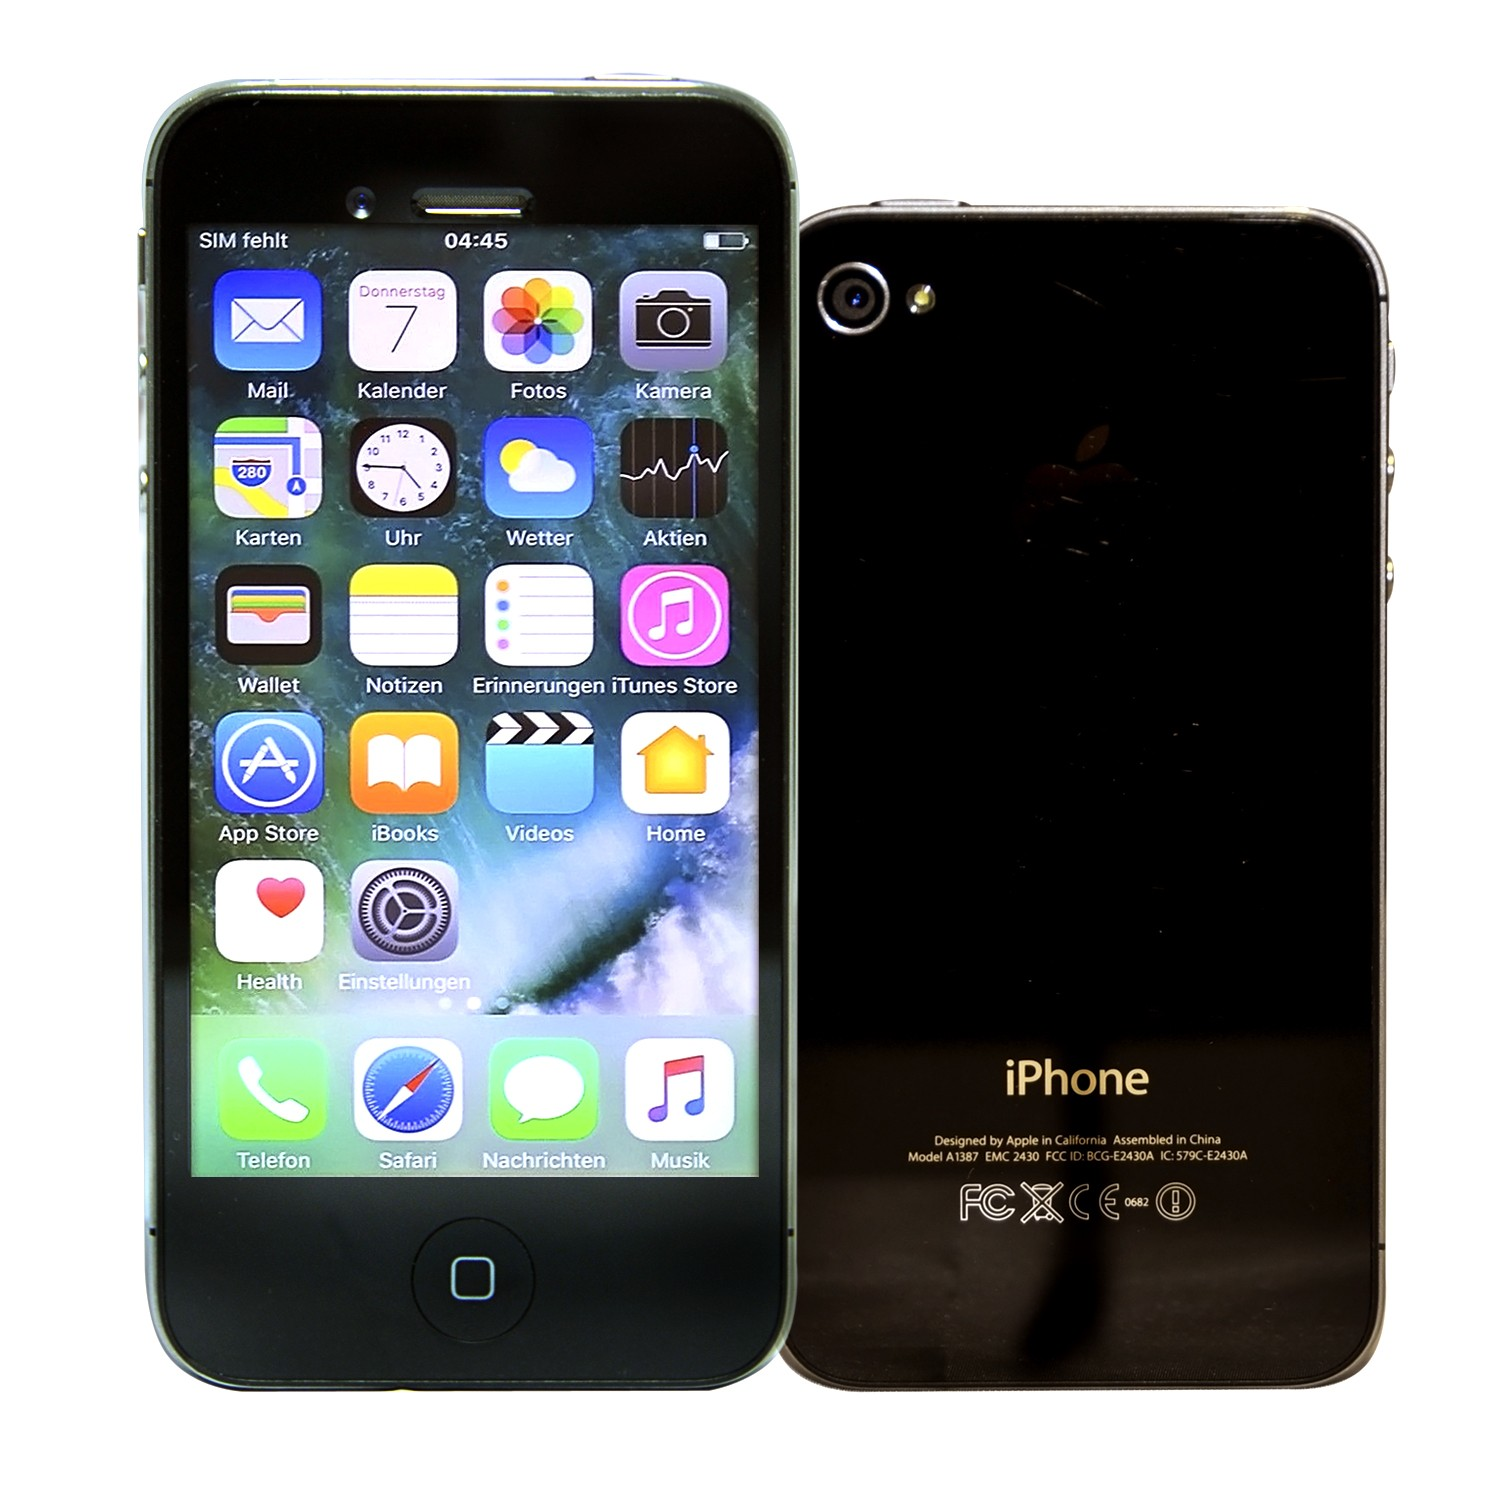 apple iphone 4s 16gb schwarz smartphone ohne simlock. Black Bedroom Furniture Sets. Home Design Ideas